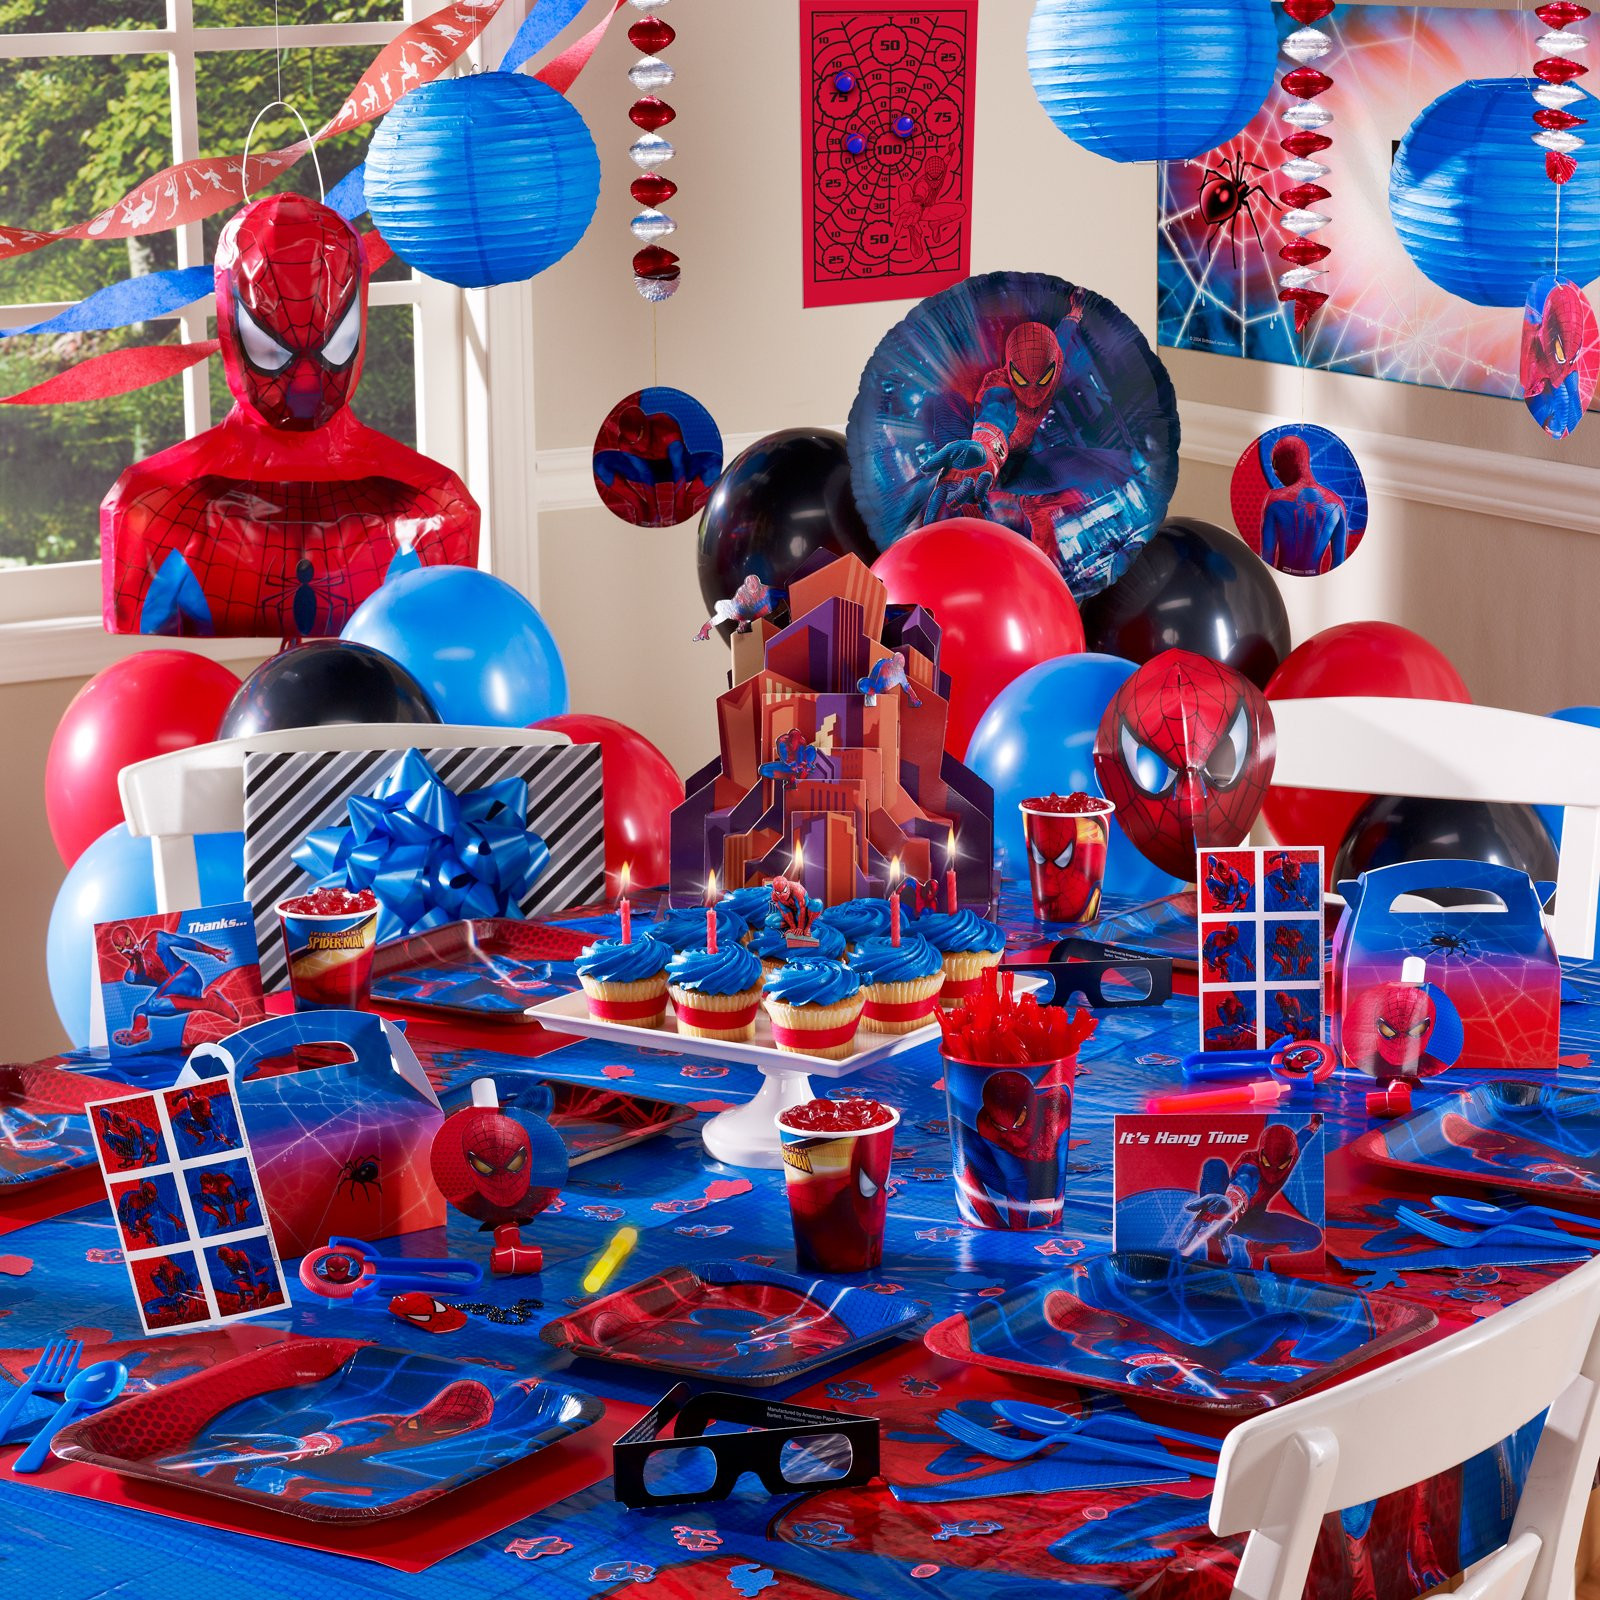 Best ideas about Spiderman Birthday Party . Save or Pin Spiderman Birthday Party Favors — CRIOLLA Brithday Now.